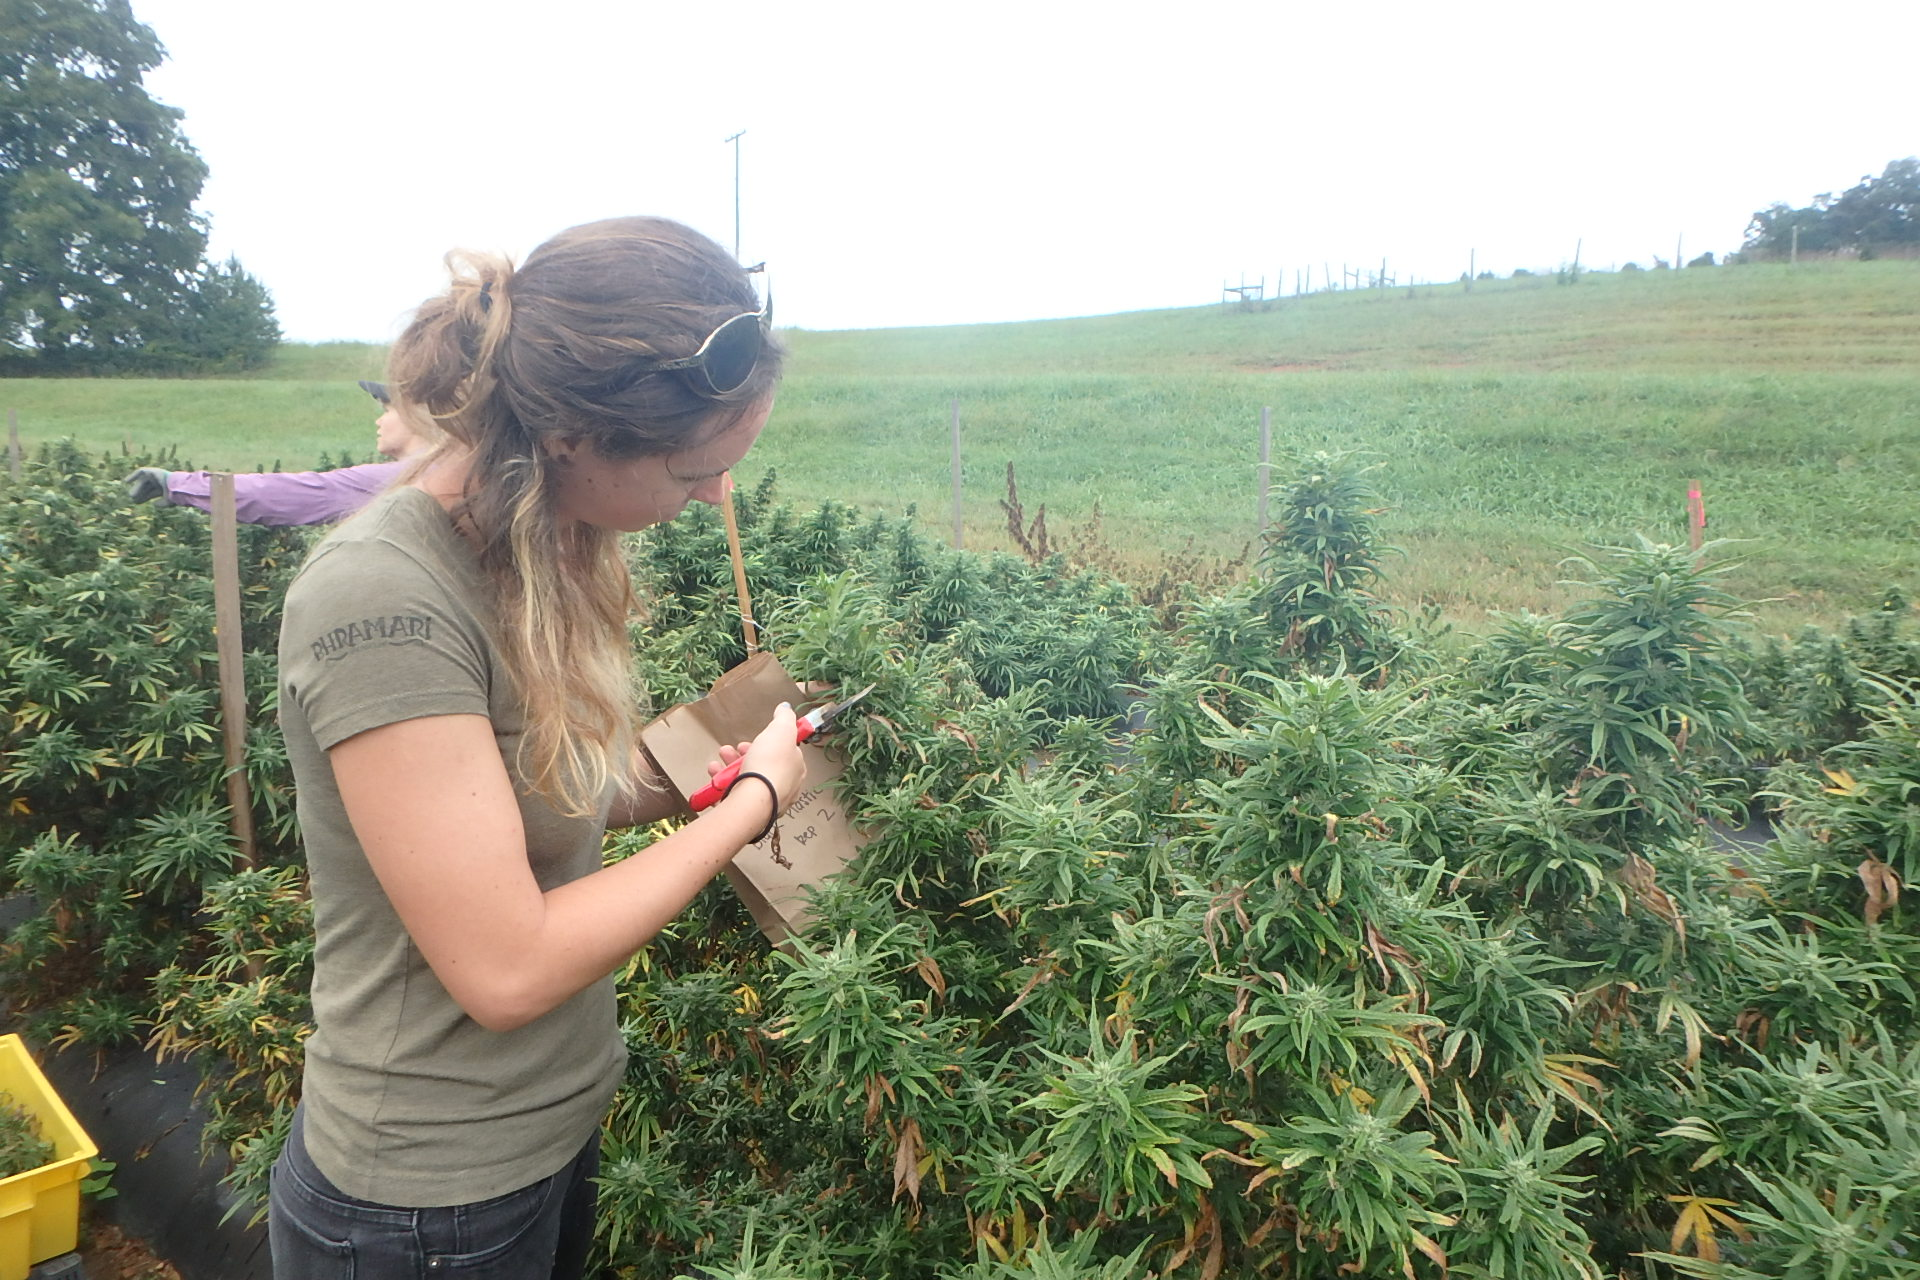 Harvesting floral parts of hemp plants